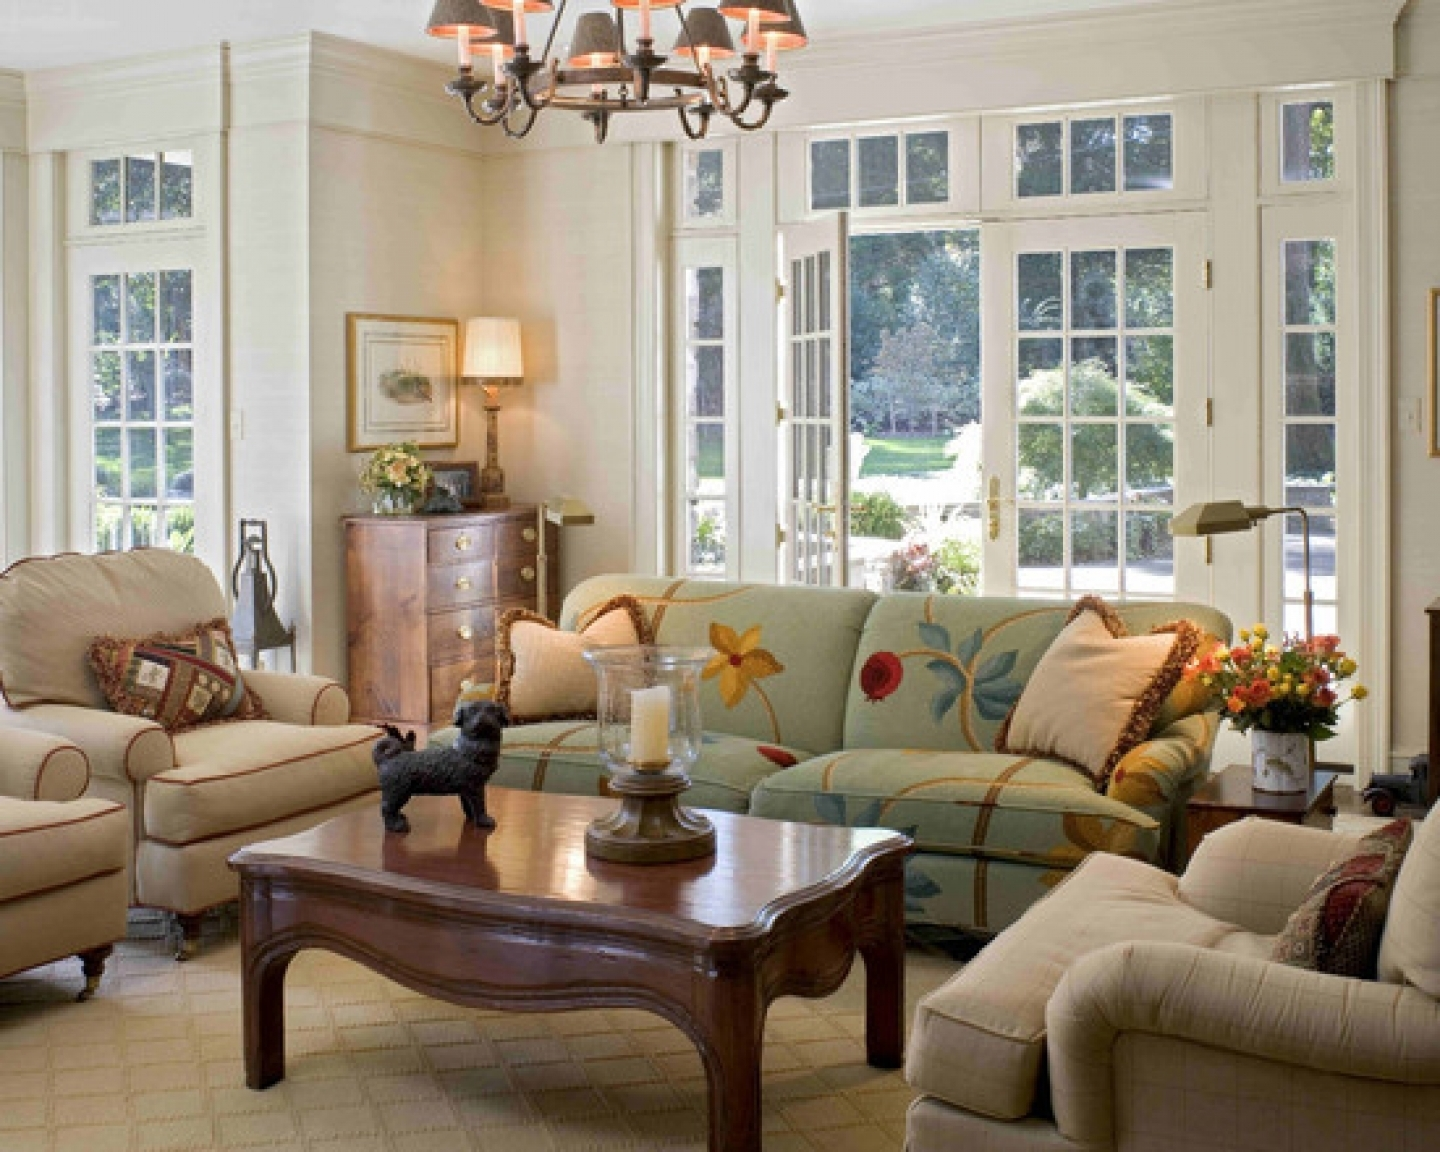 Fancy Country French Sofas 62 In Sofas and Couches Ideas with Country French Sofas